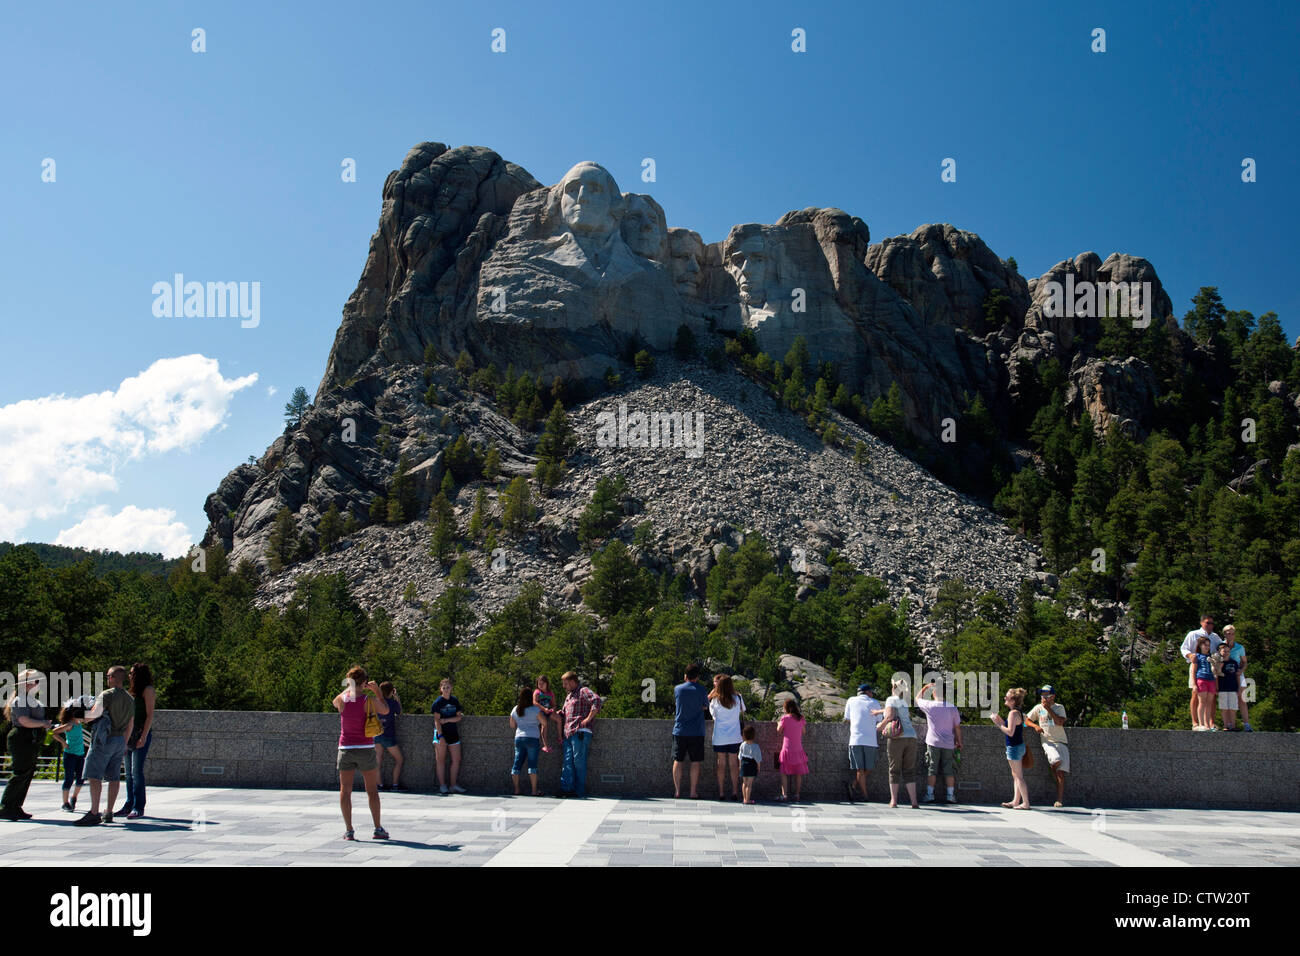 Tourists view Mt. Rushmore from the main viewing deck, Mount Rushmore National Monument, South Dakota, United States Stock Photo